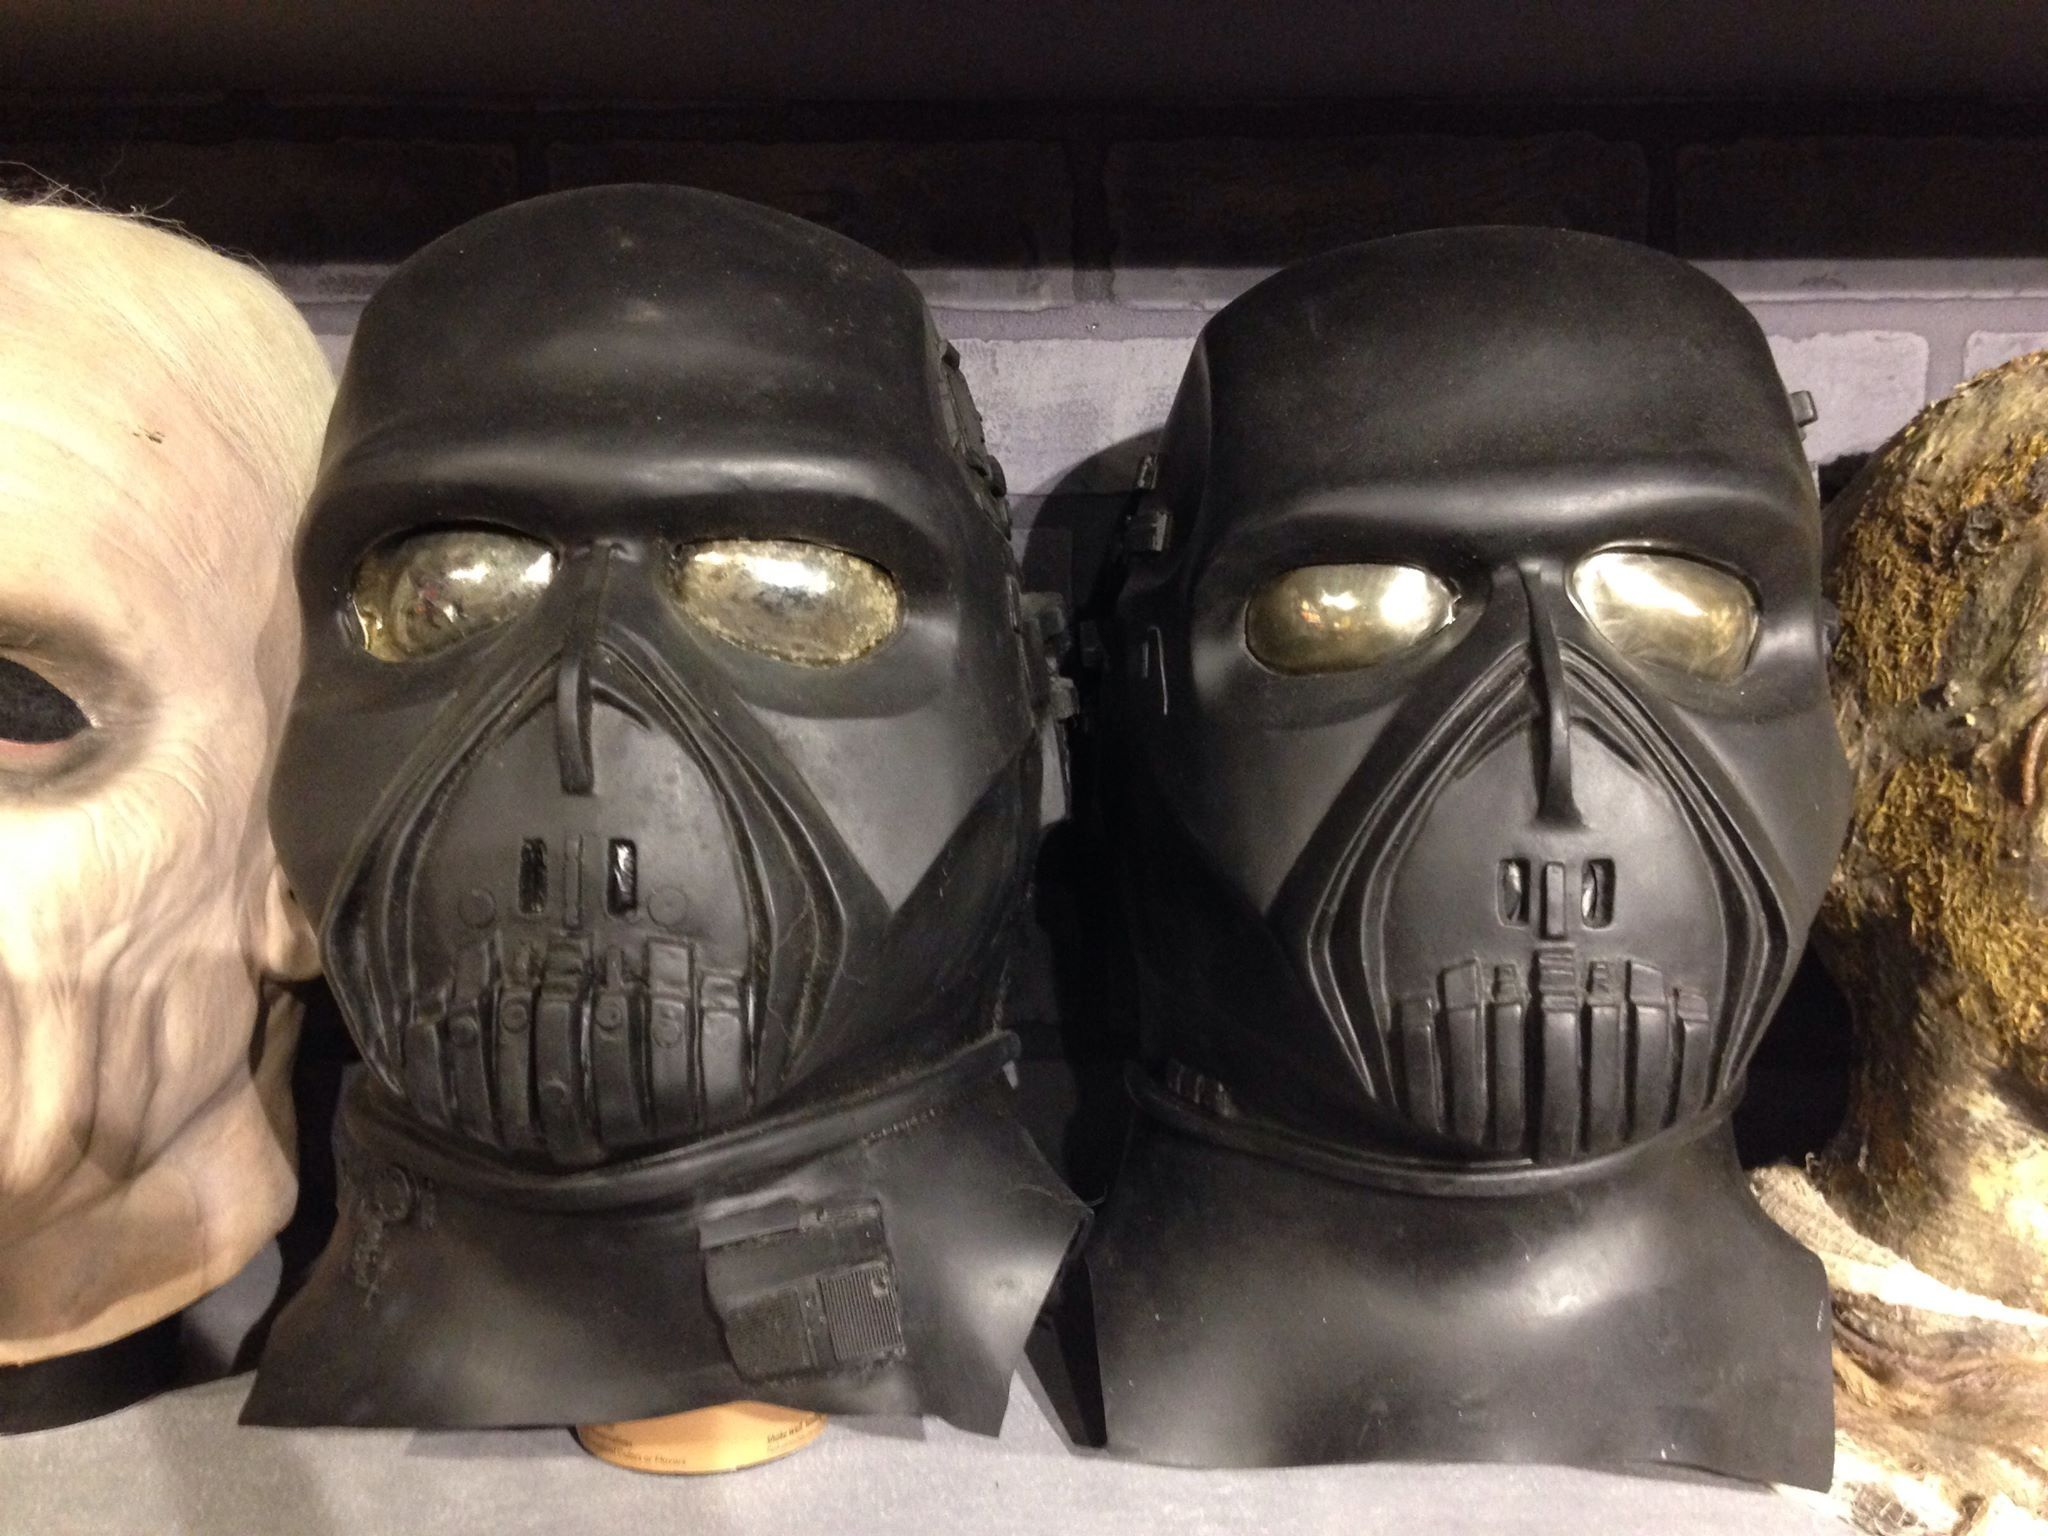 Both versions of the Don Post Studios Death Cyborg masks -The Crimson Ghost Mask Room 2015